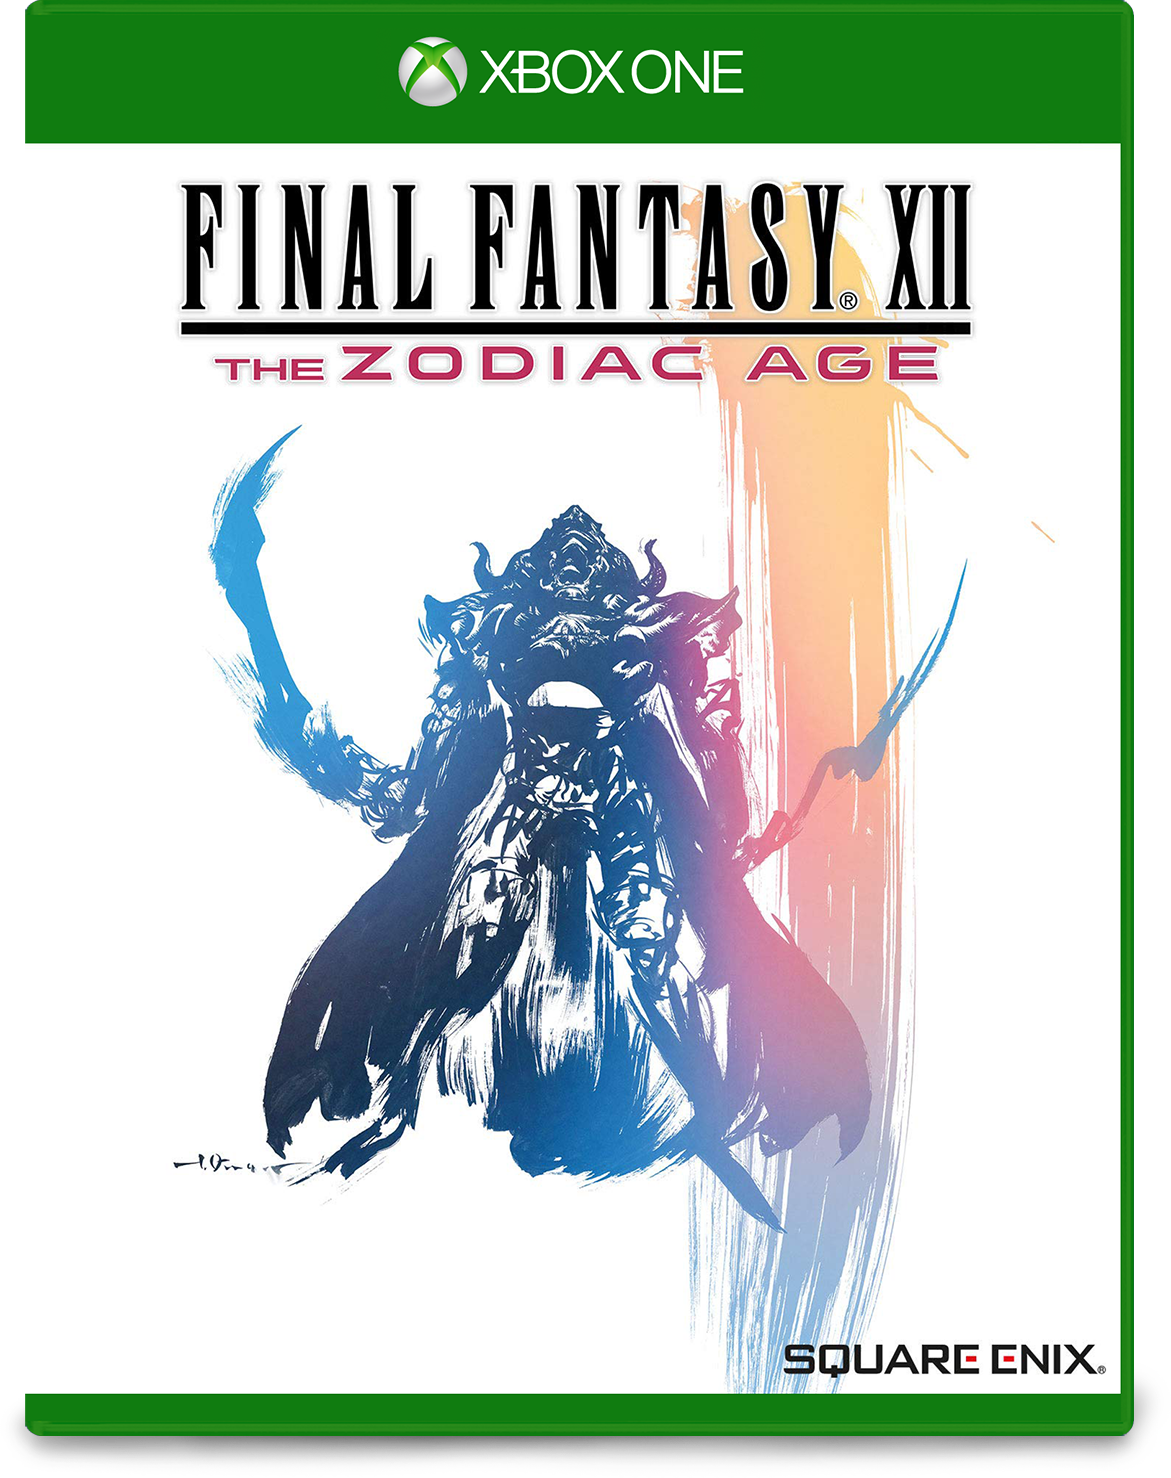 Cover of Final Fantasy XII The Zodiac Age